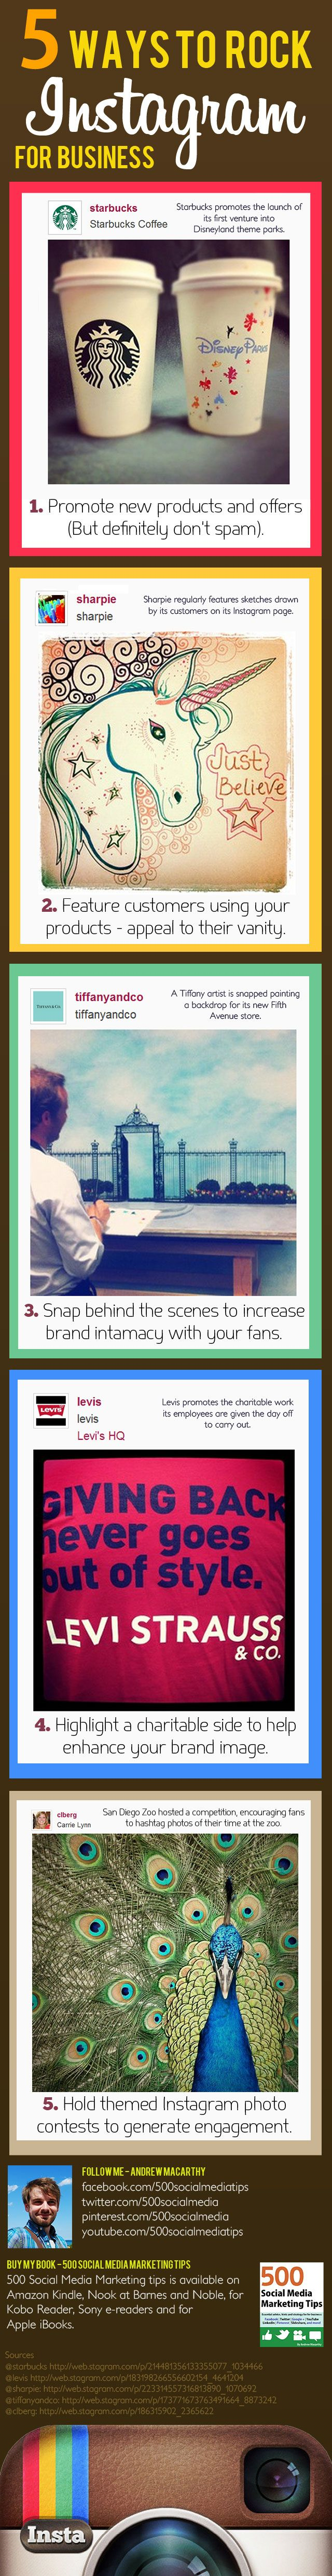 5 ways to rock Instagram for business